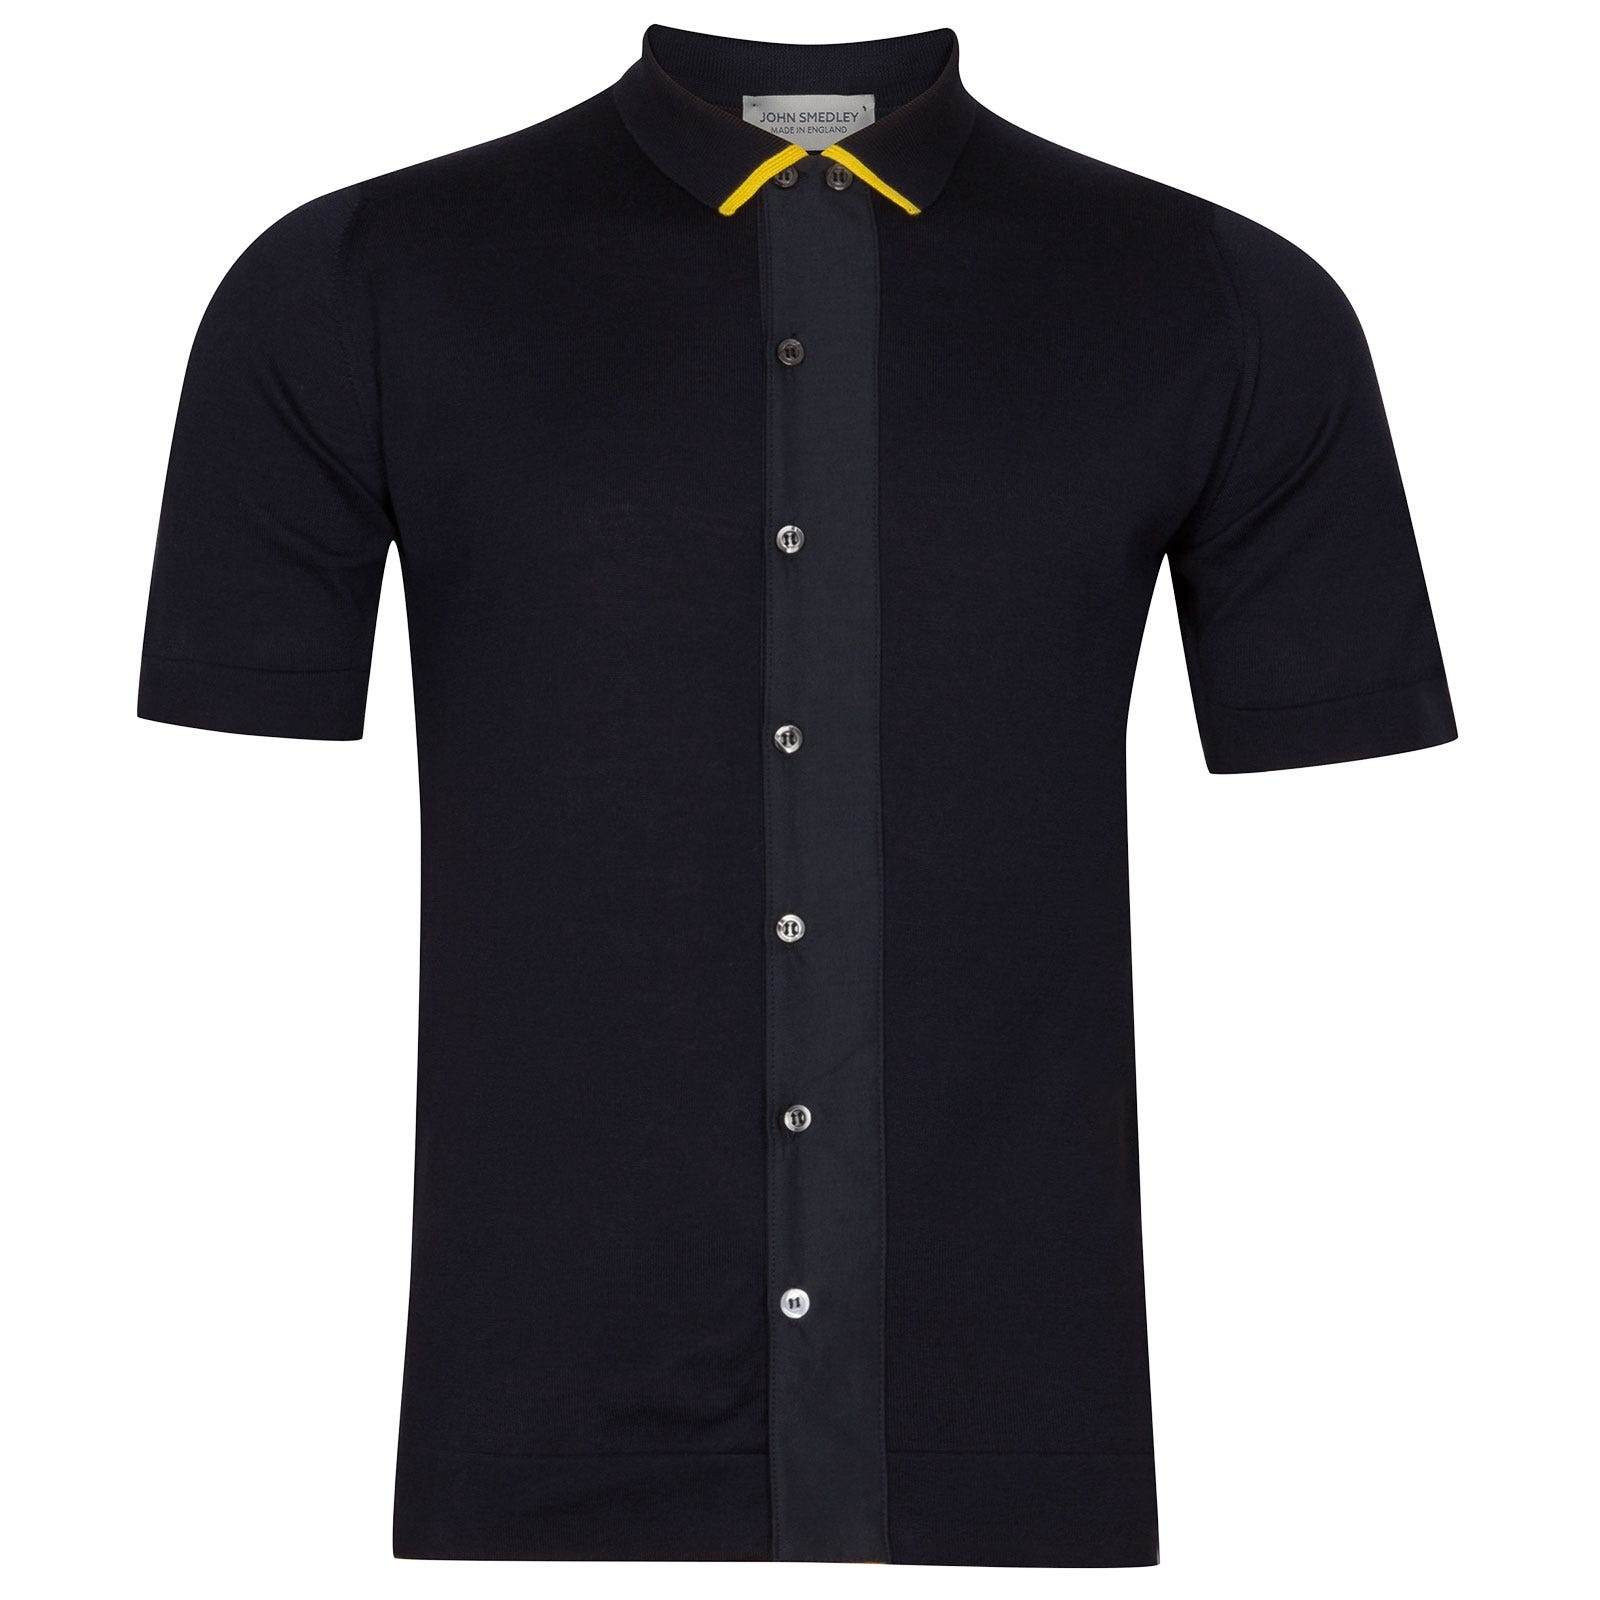 John Smedley molton Sea Island Cotton Polo Shirt in Navy-LGE